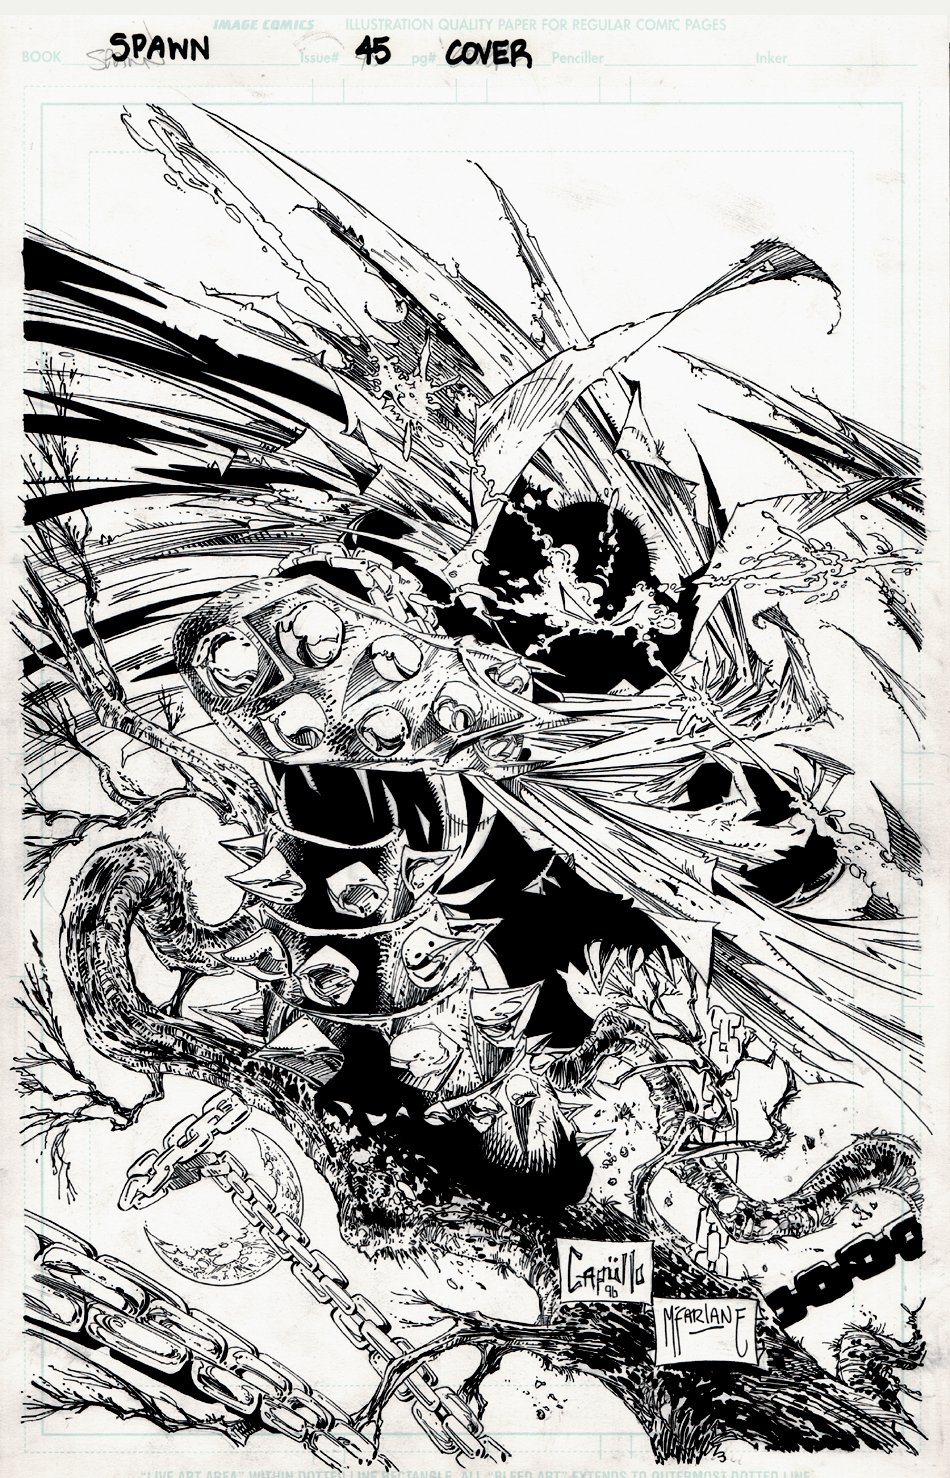 Spawn #45 Cover (TODD McFARLANE INKS!) 1995